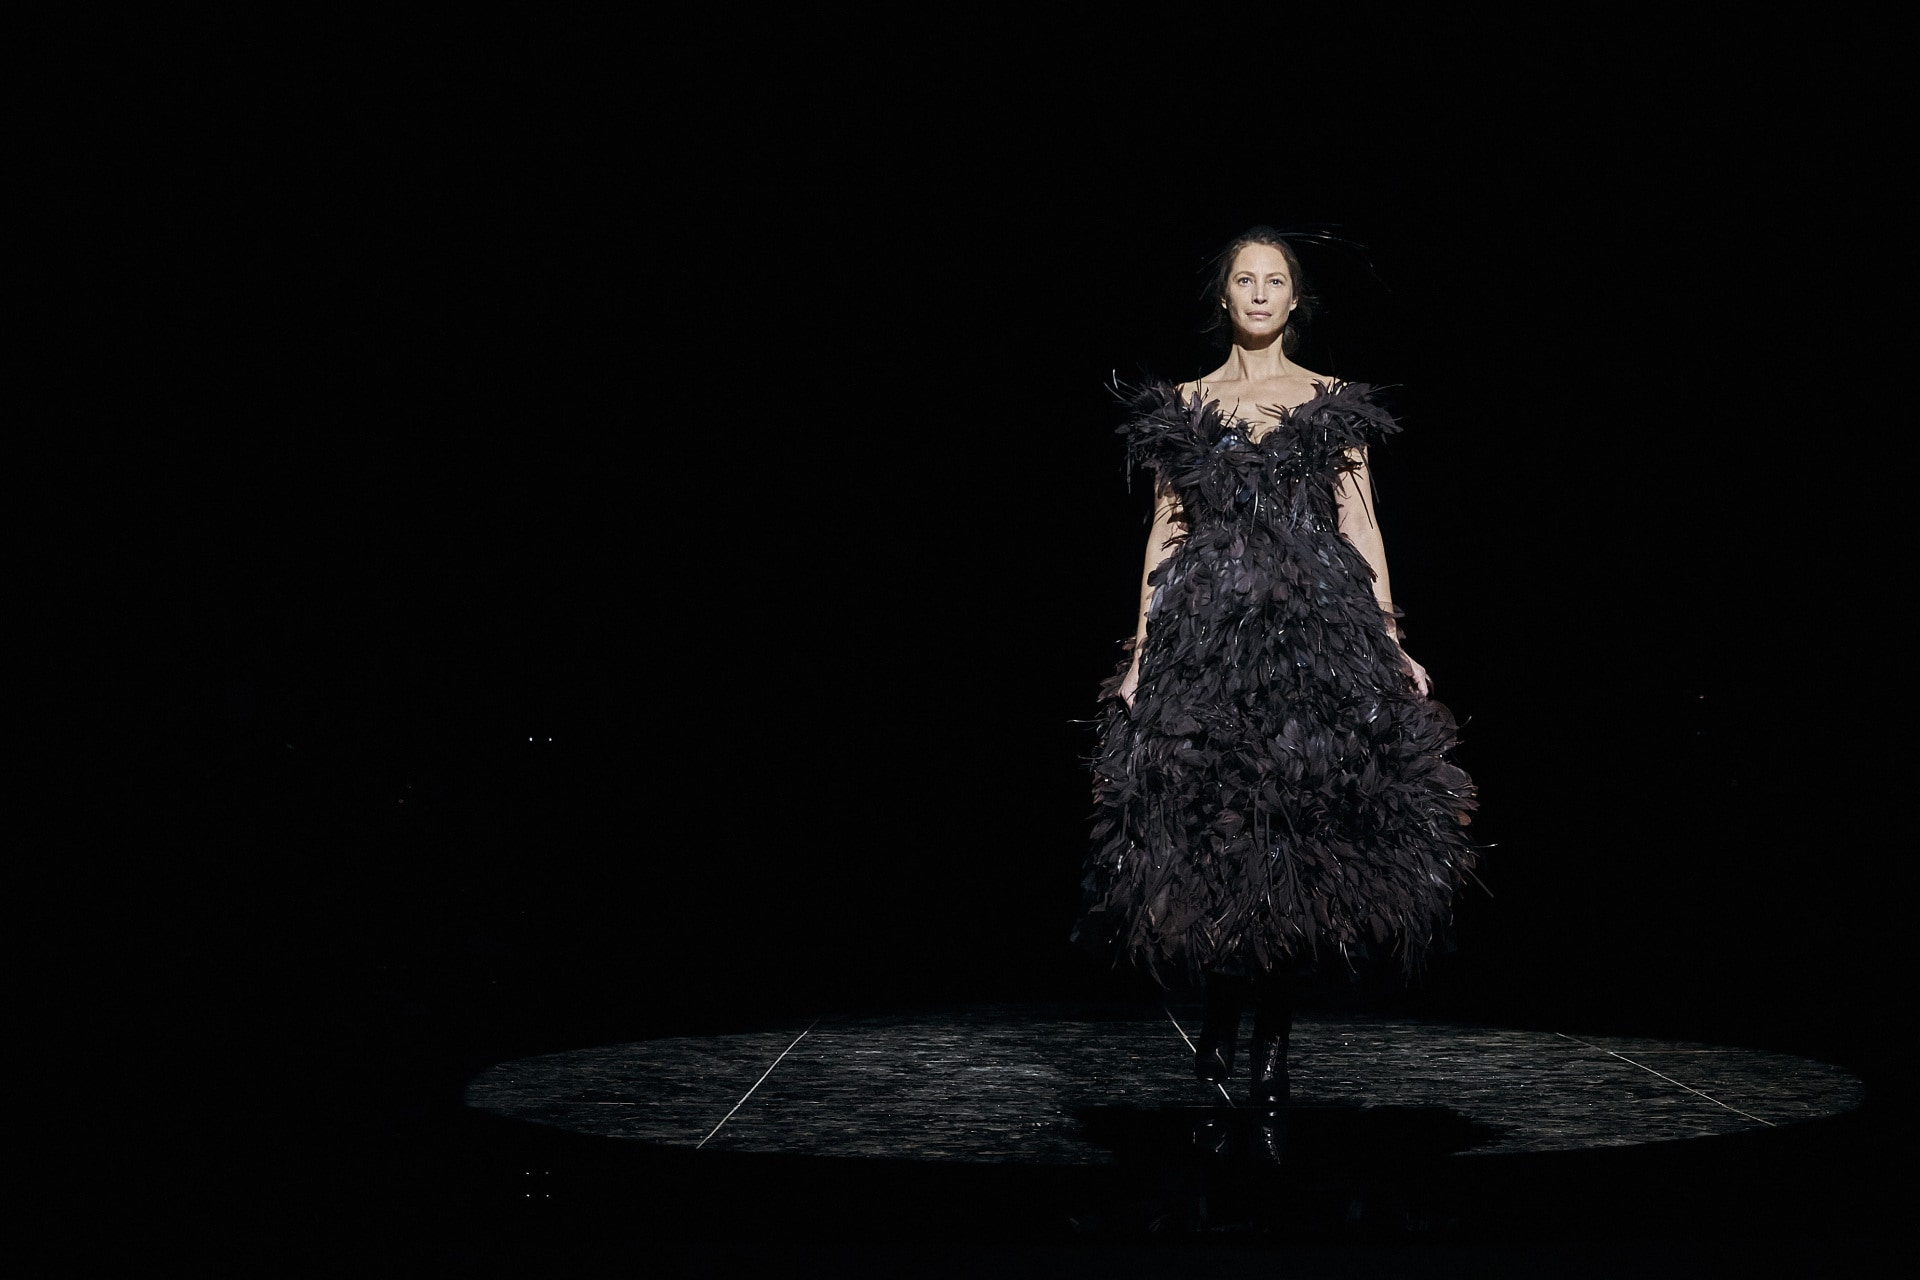 Christy Turlington returns to the runway after 20 years to close NYFW for Marc Jacobs